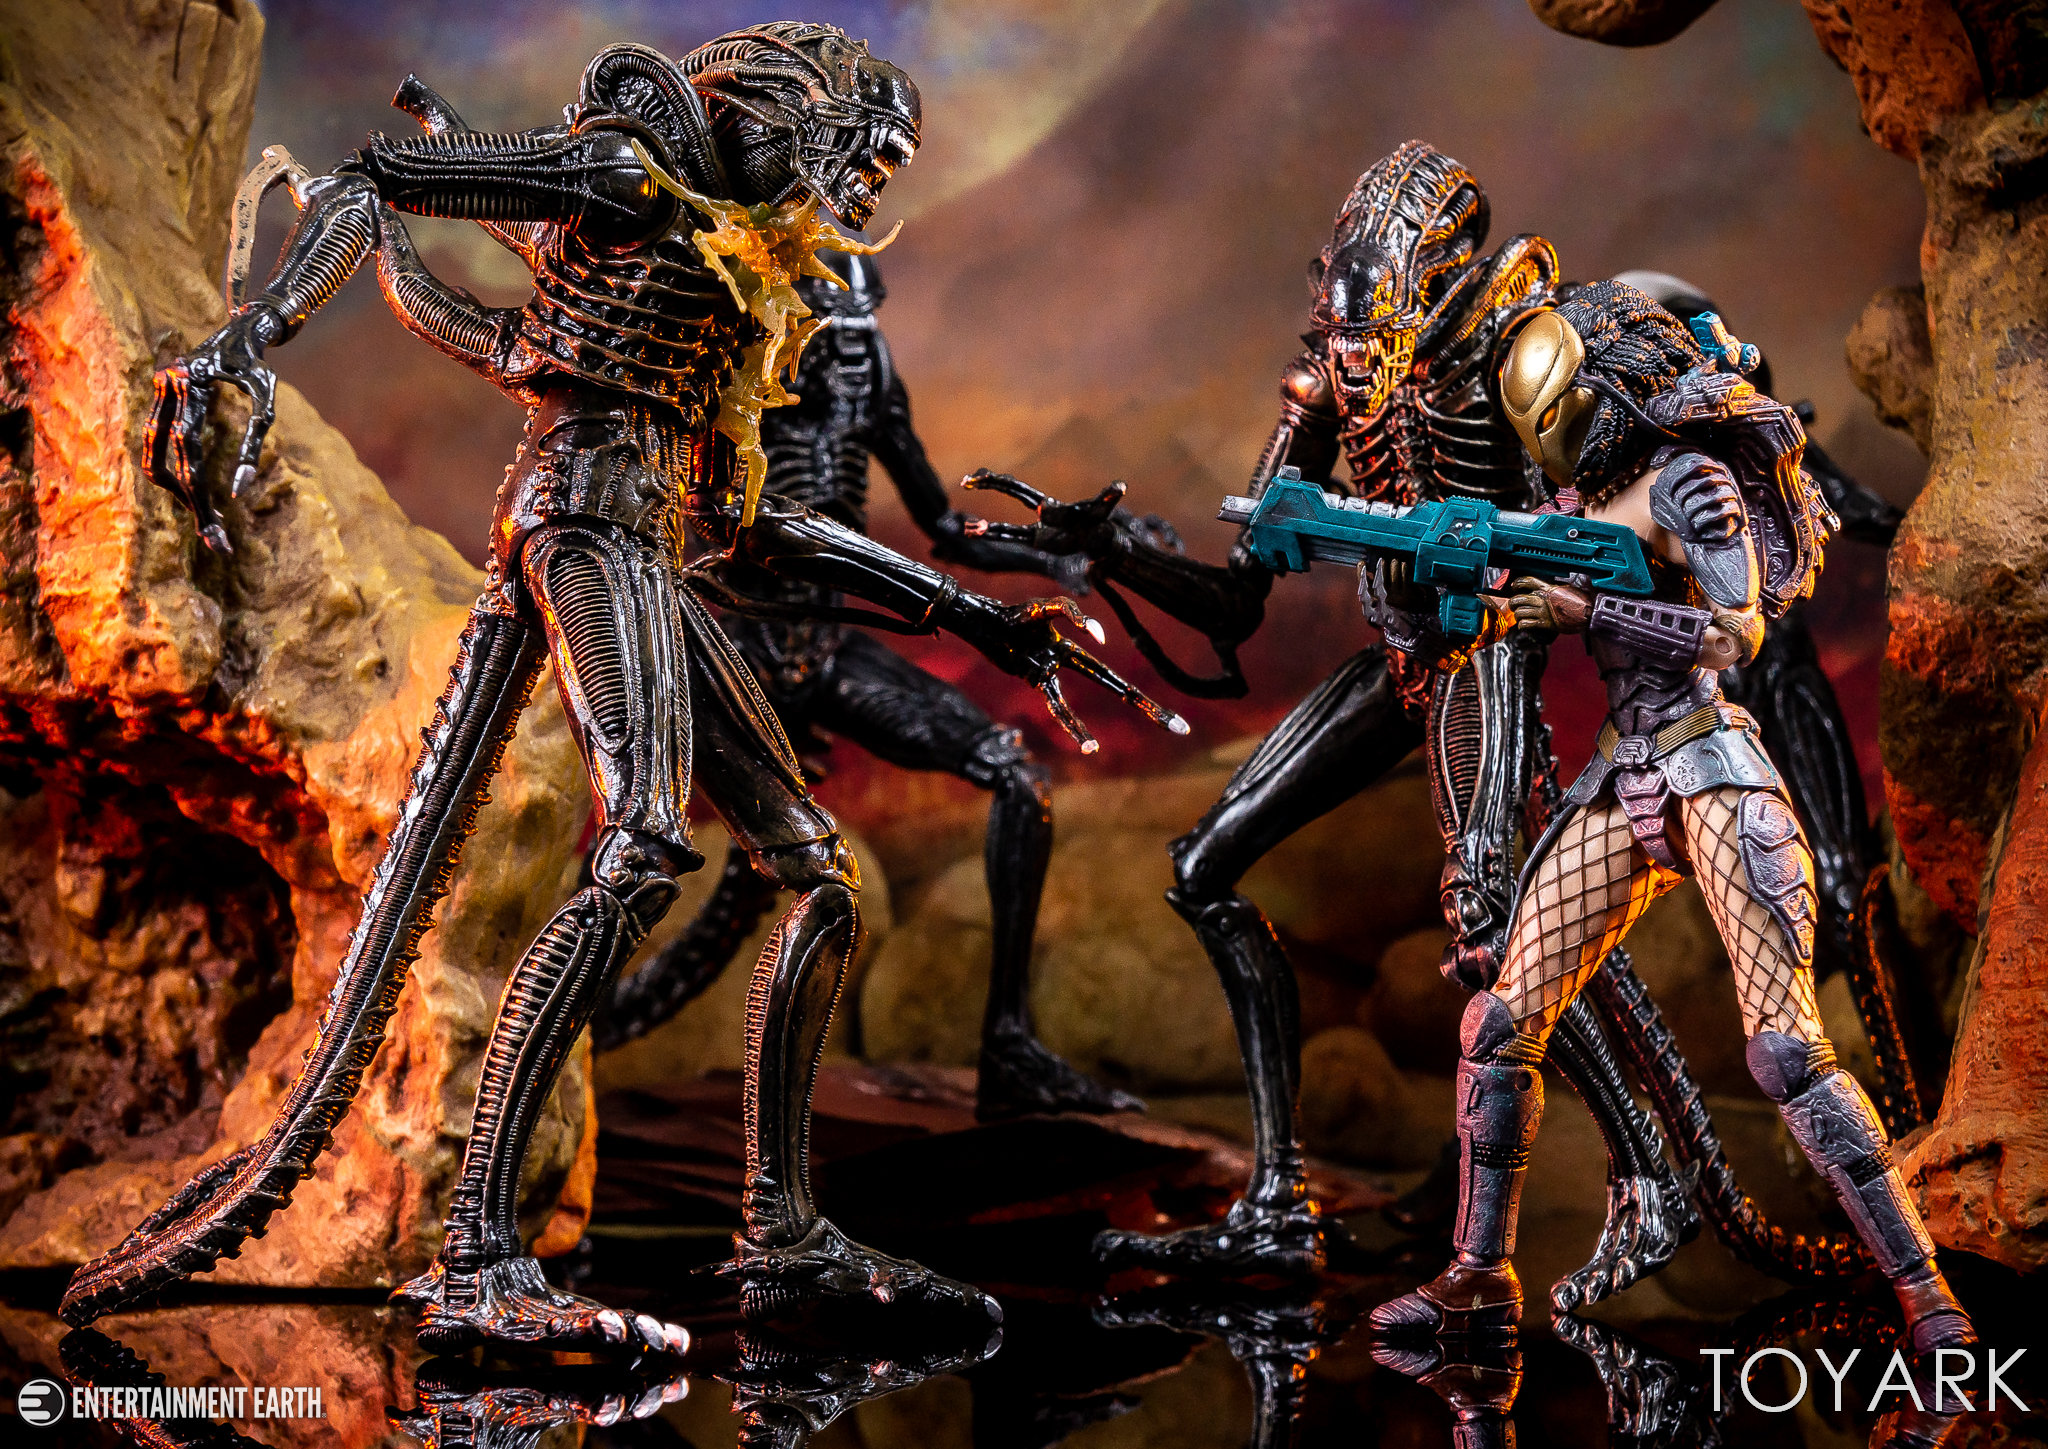 https://news.toyark.com/wp-content/uploads/sites/4/2019/01/Predator-NECA-Series-18-Figures-050.jpg